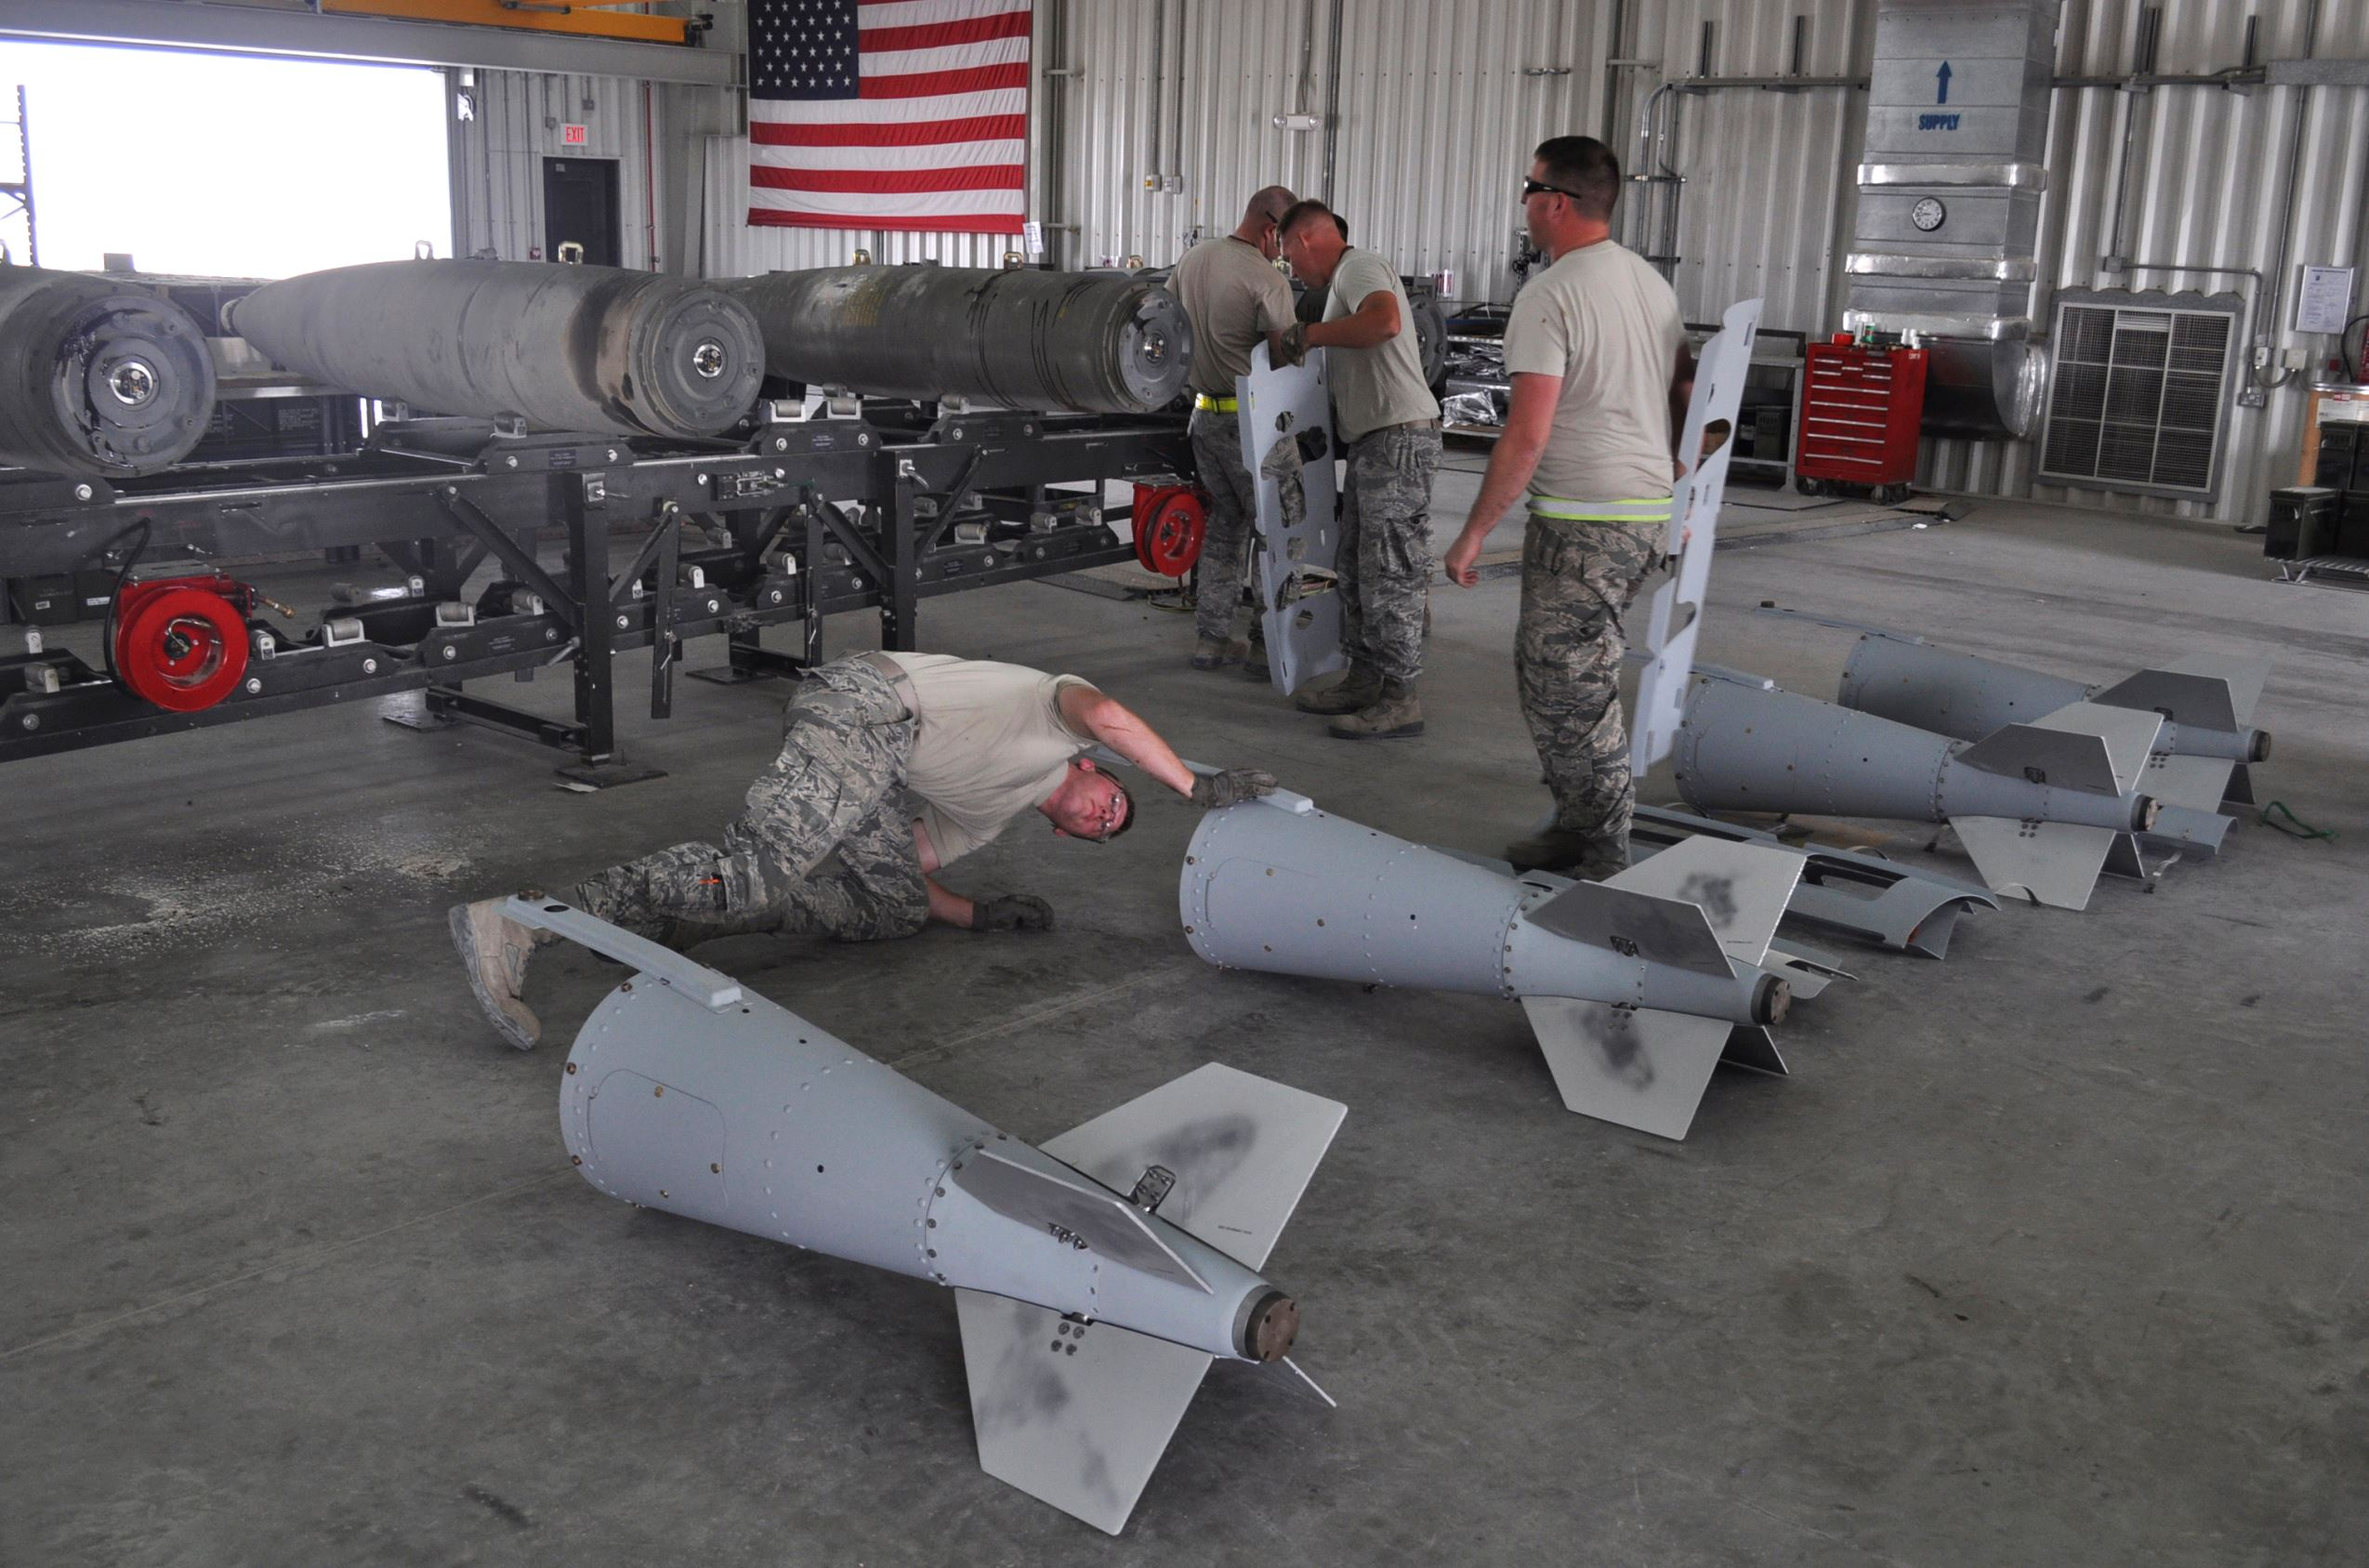 Members of a U.S. Air Force munitions team assemble guided bombs to support the 379th Air Expeditionary Wing at the al-Udeid Air Base in Qatar. The base is the regional nerve center for the air war against the militants who have taken over nearly a third of Iraq and Syria. That makes it the main hub for coordinating warplanes from the U.S. and 11 other nations in the coalition carrying out bombing raids.